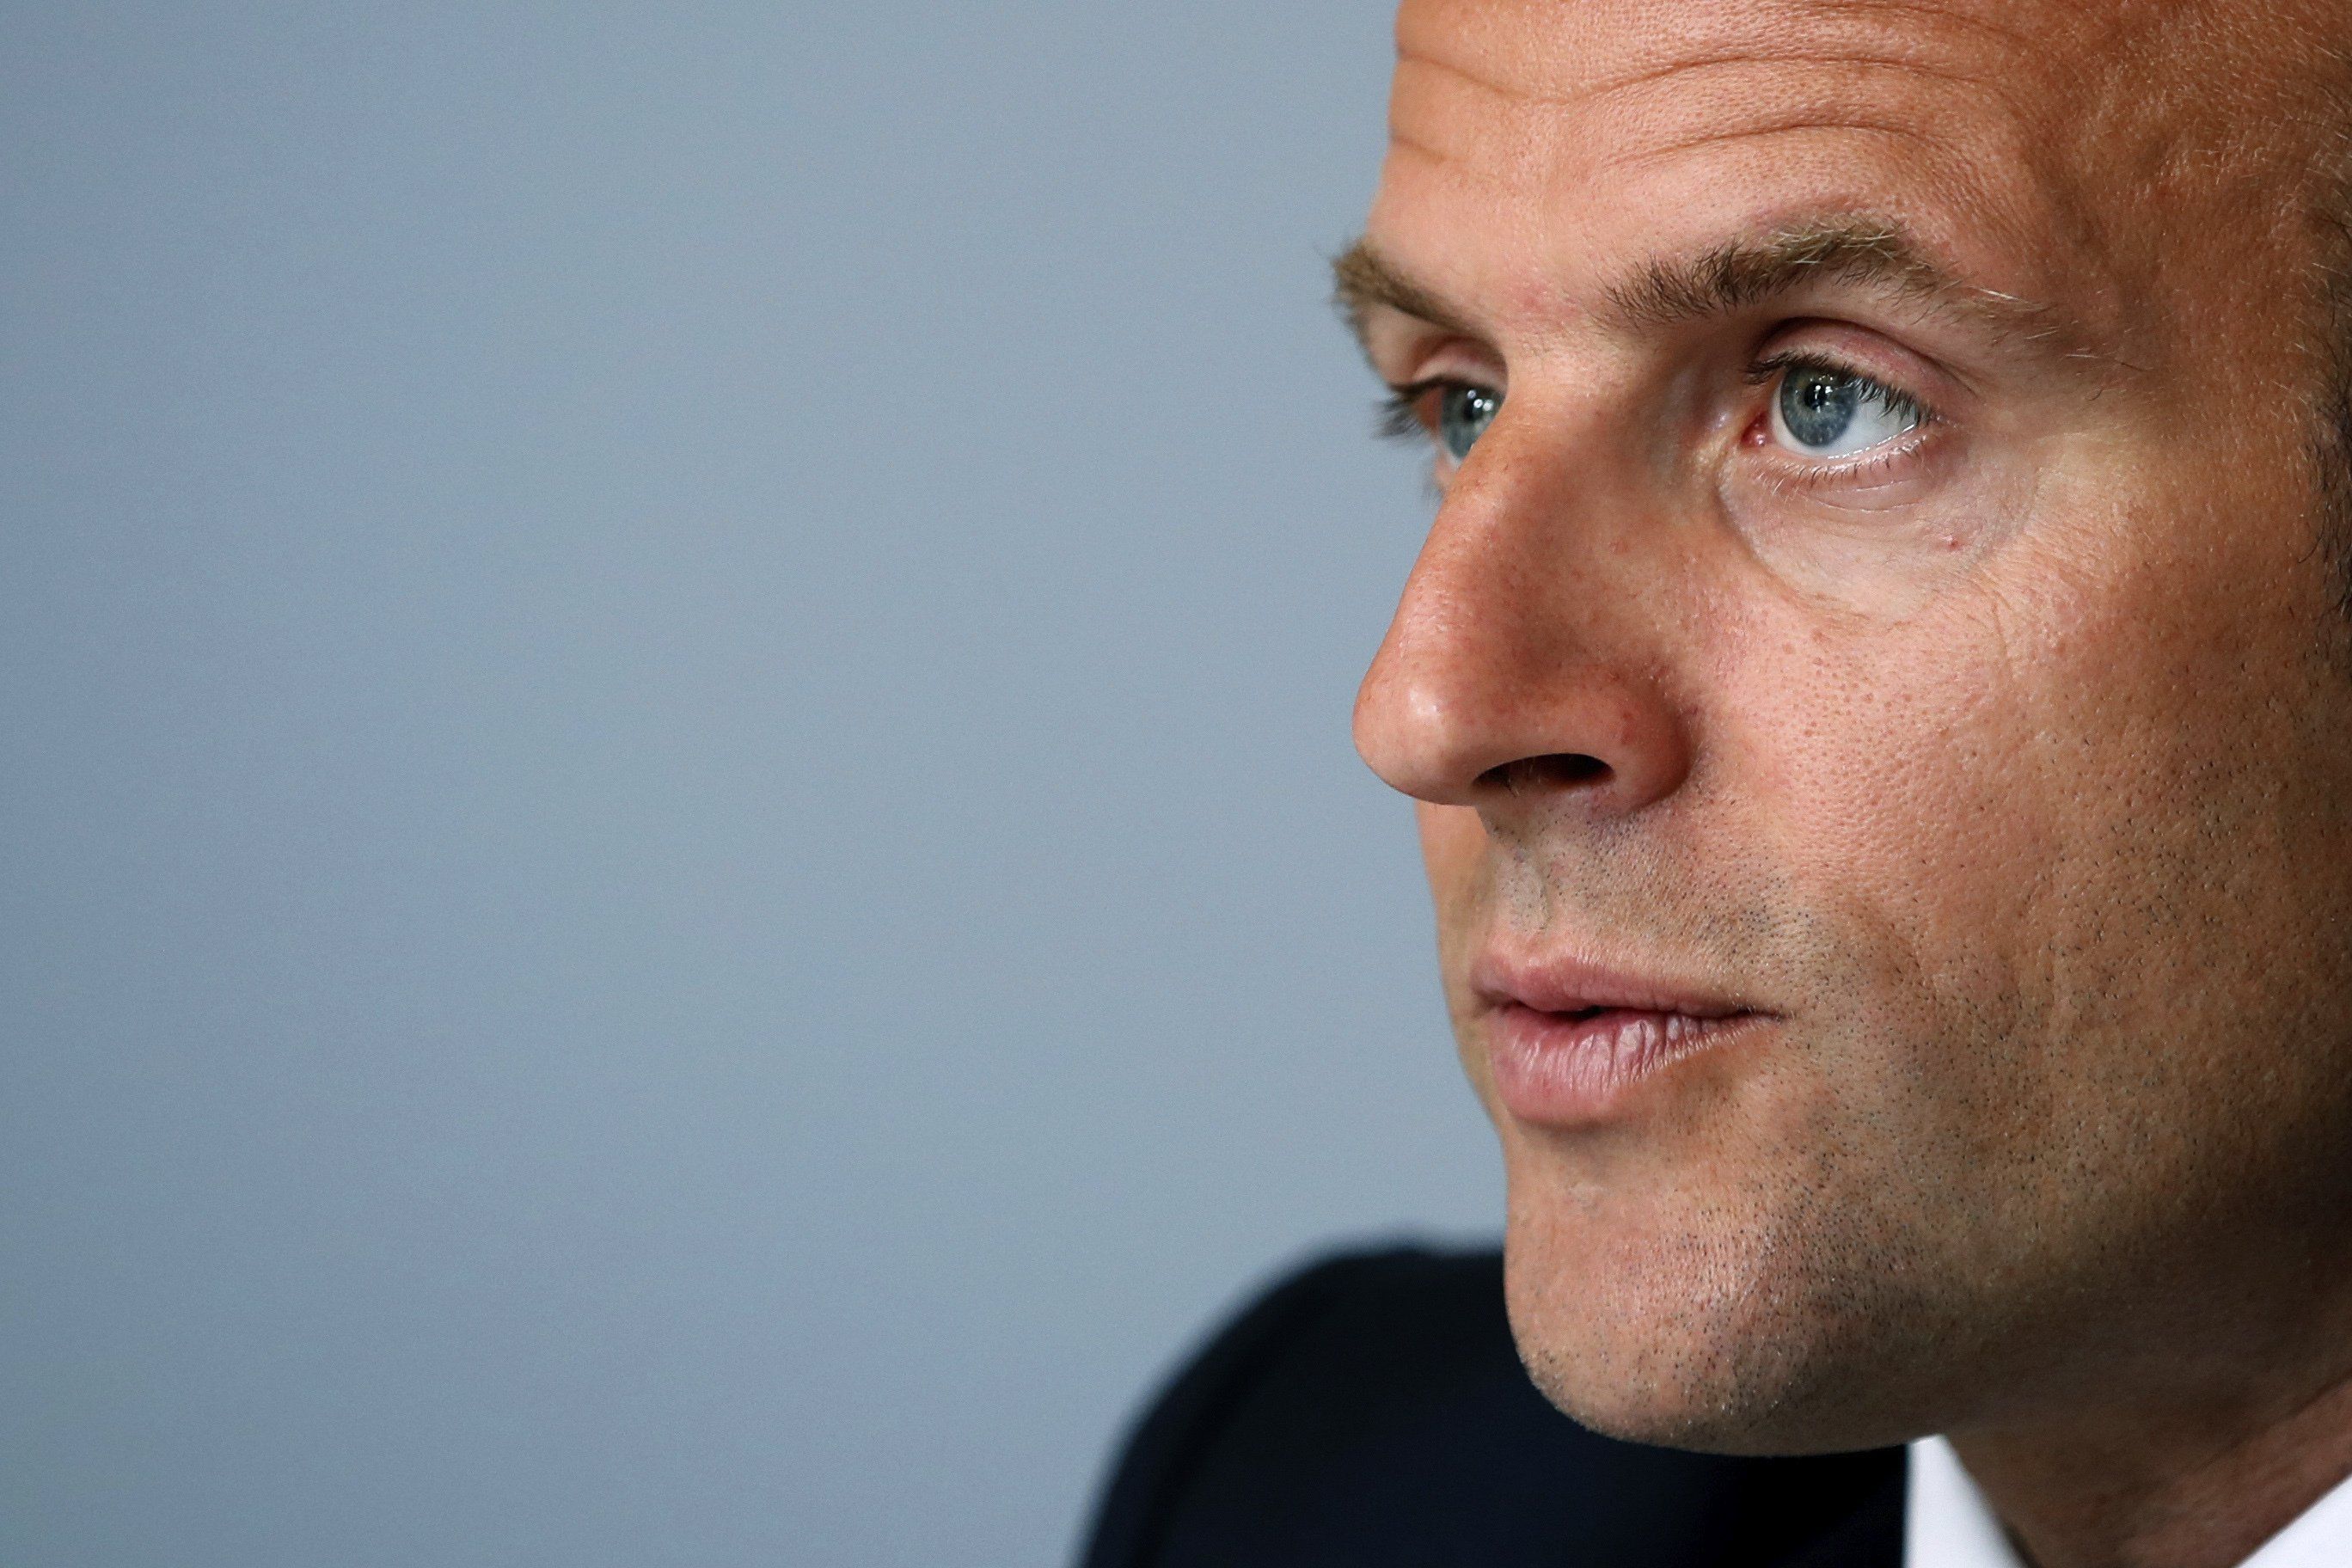 French leader rejects racism but colonial statues to remain